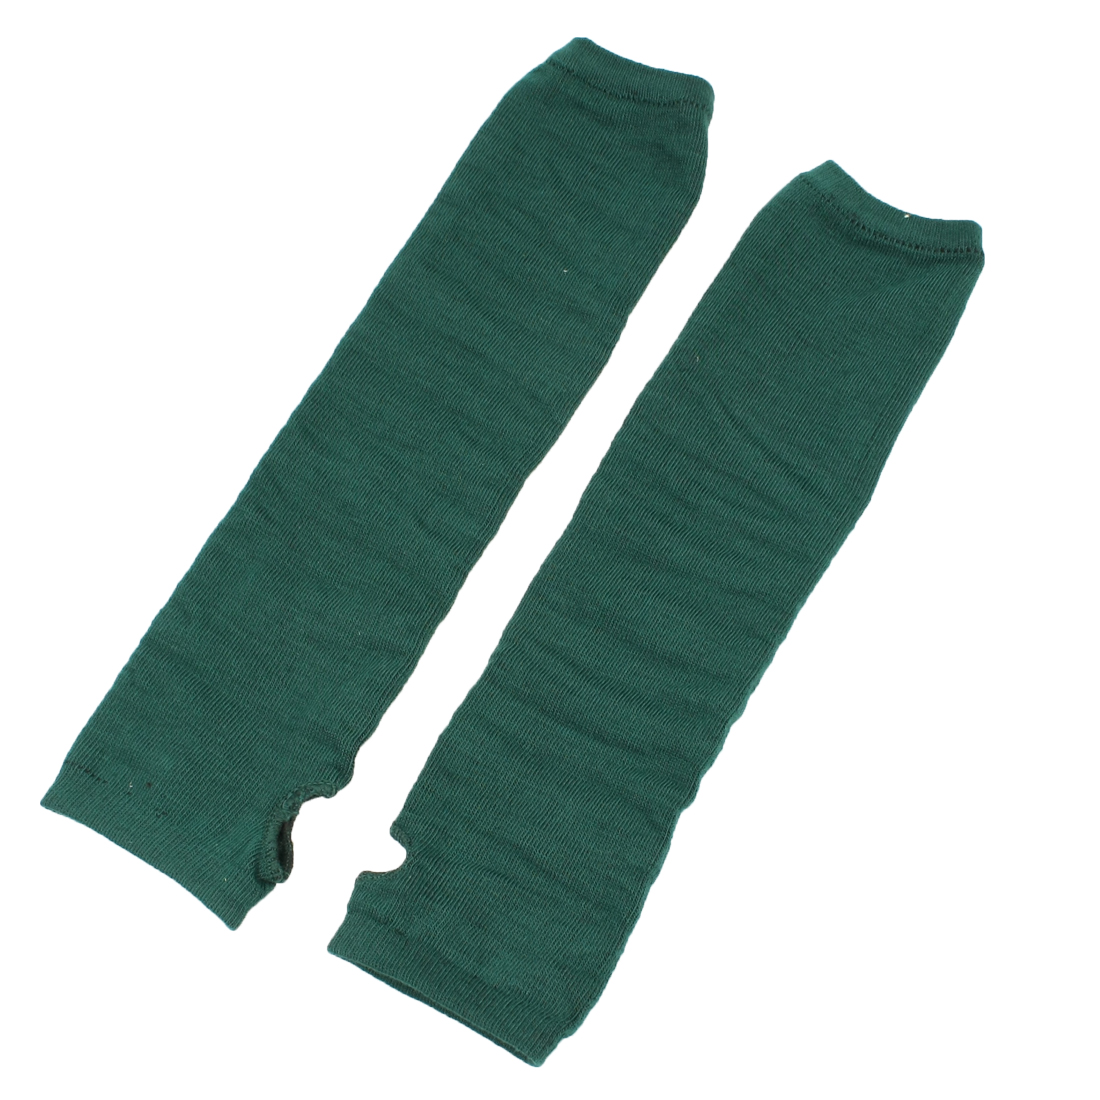 Pair Dark Green Elastic Knitted Fingerless Thumbhole Elbow Warm Gloves for Lady